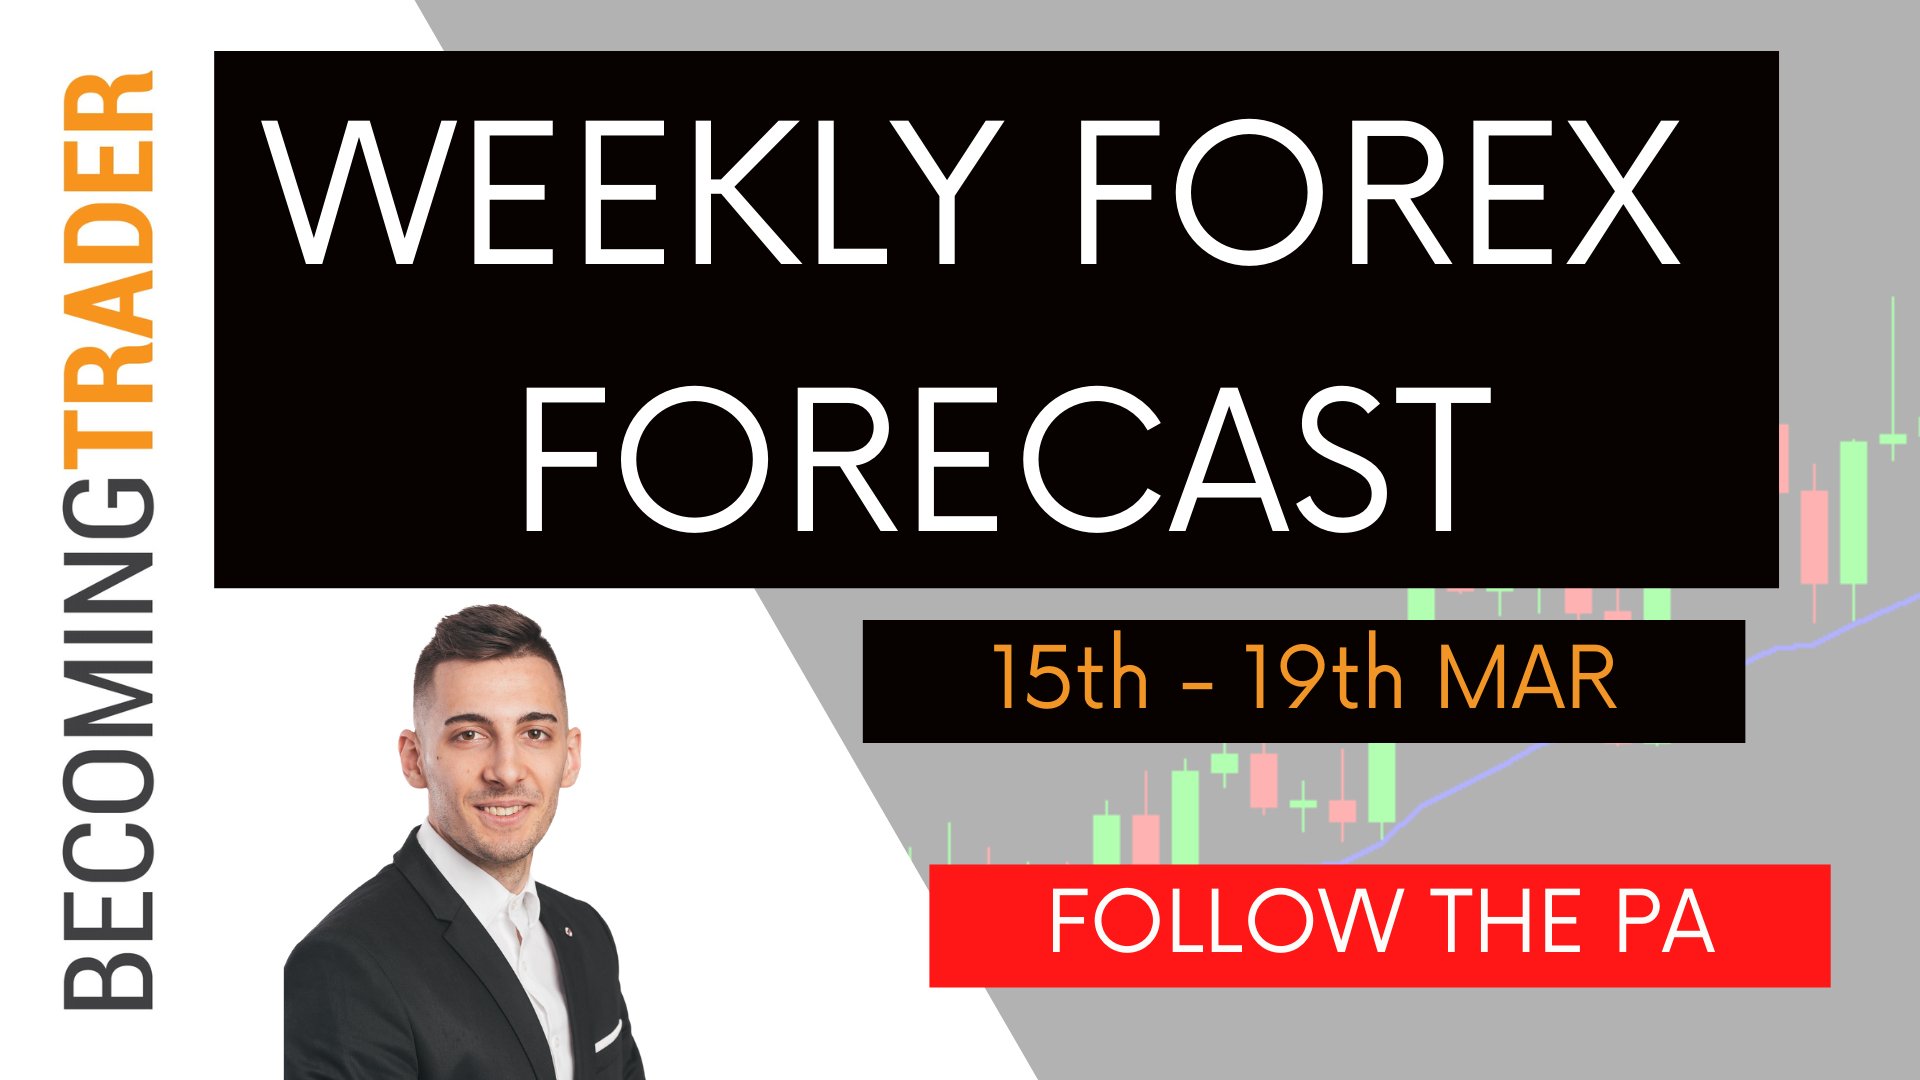 Weekly Forex Forecast 15th to 19th March 2021 | Price Action on EUR/USD, GBP/USD & Majors